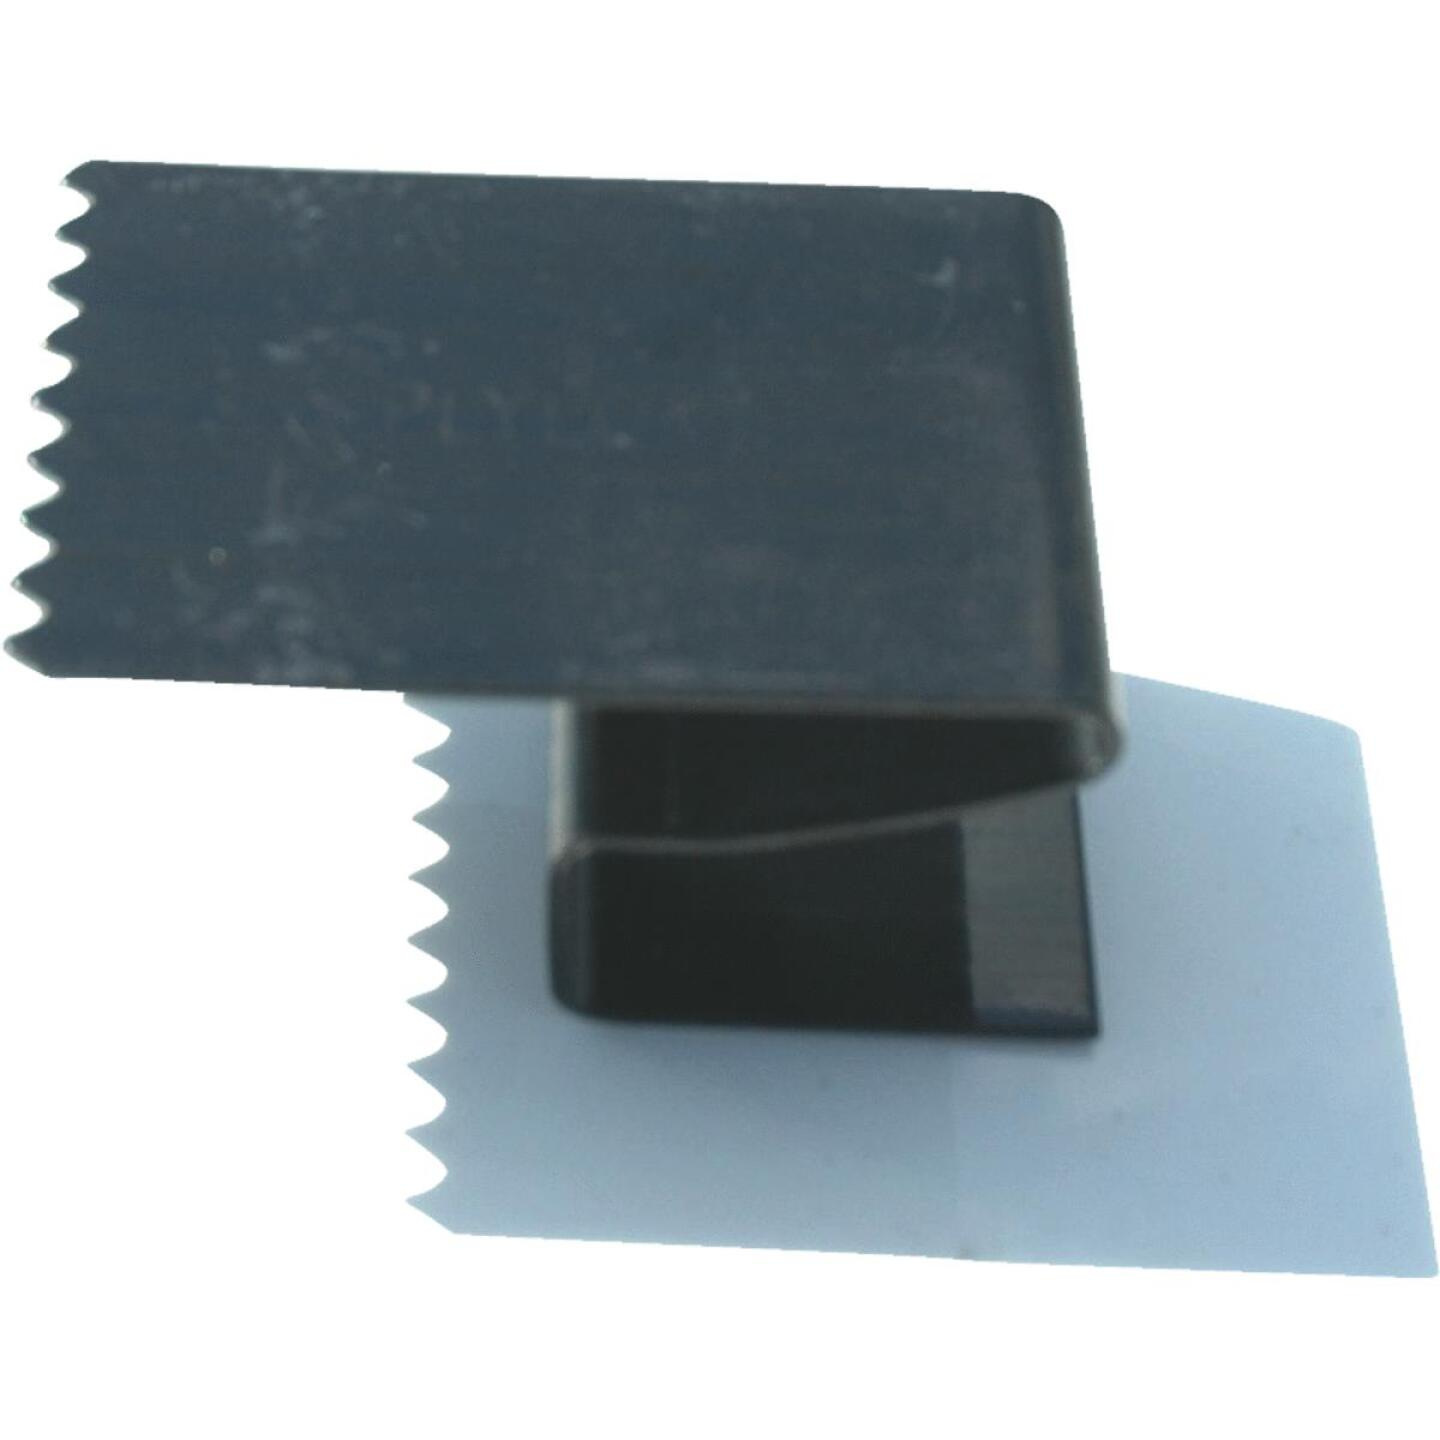 Plylox 1/2 In. Hurricane Clip (20 Count) Image 1